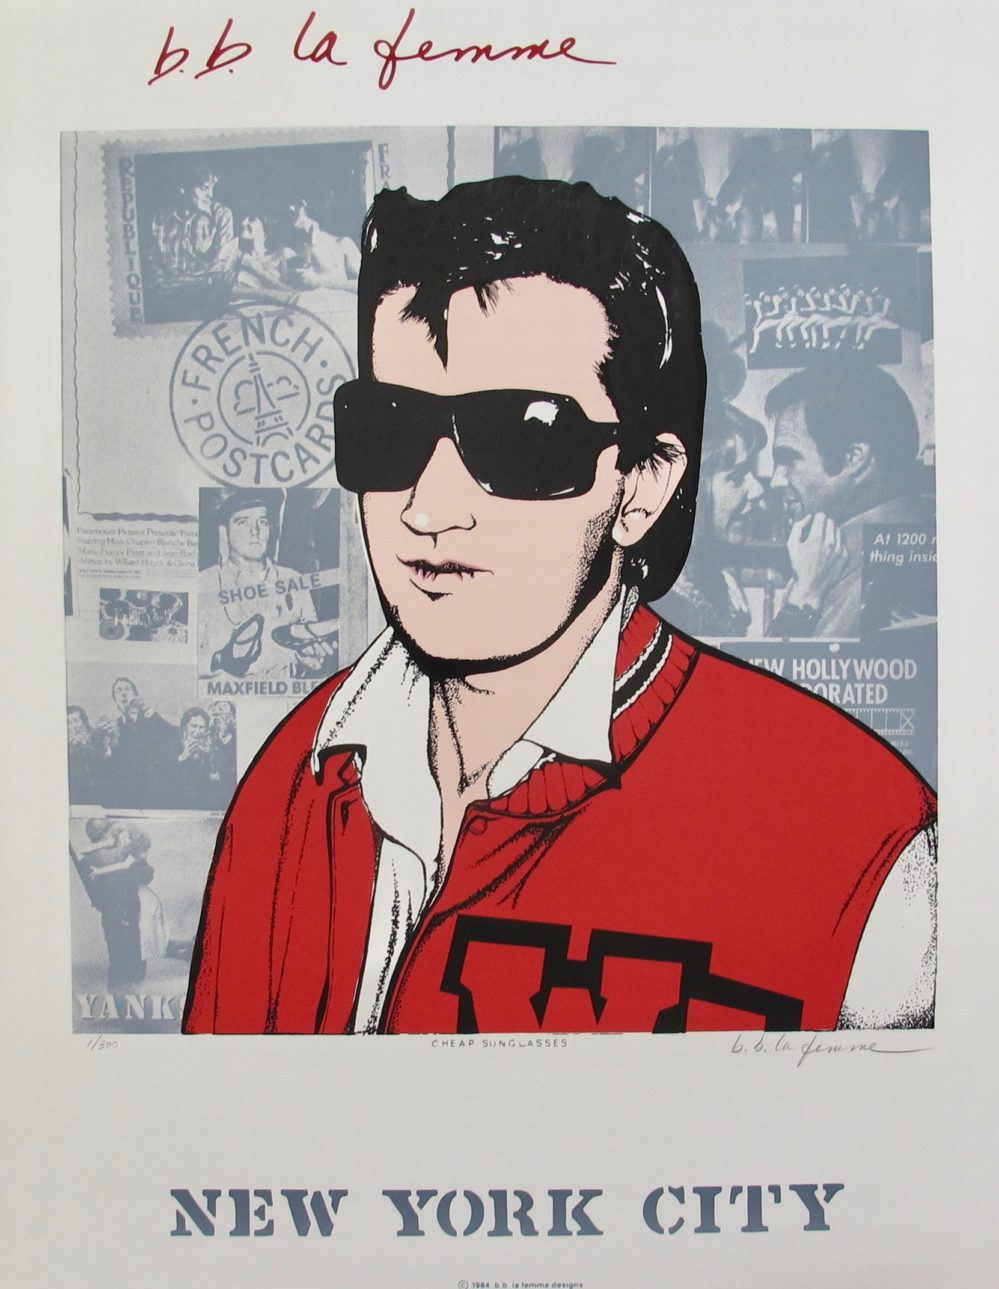 B.B. La Femme CHEAP SUNGLASSES 1984 Hand Signed Serigraph